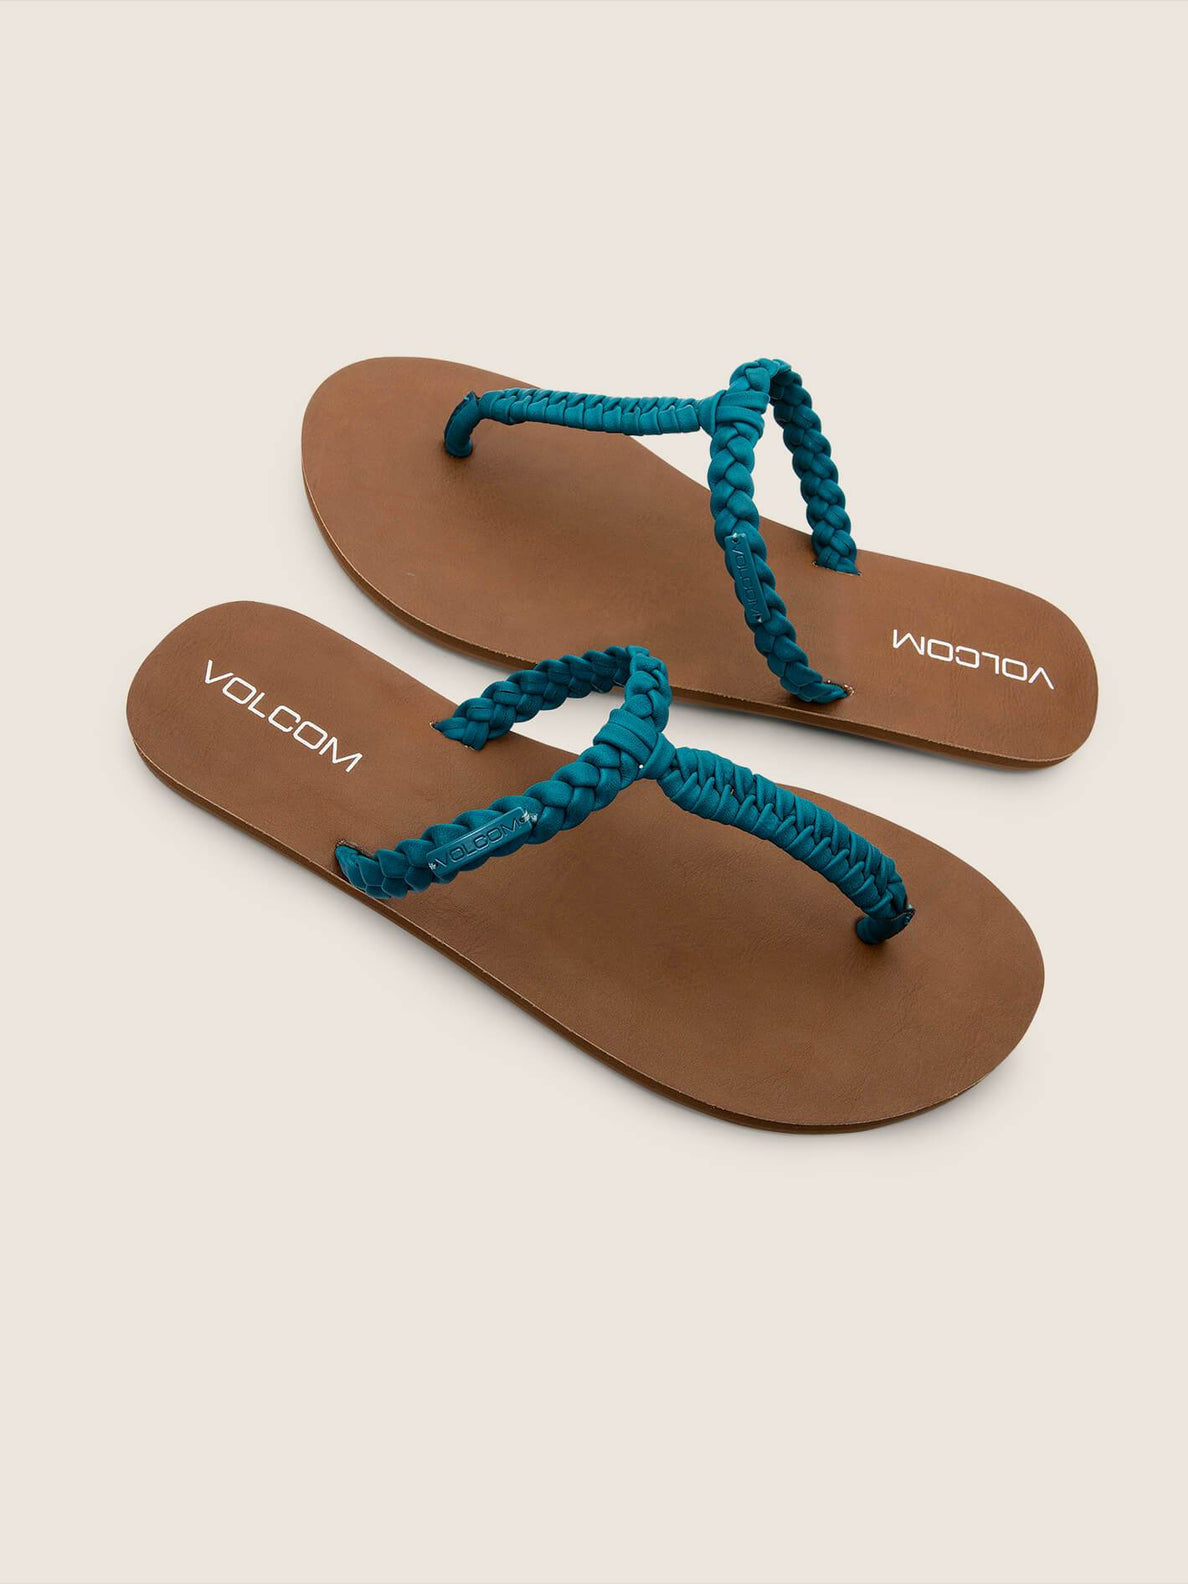 Fishtail Sandals In Teal, Front View